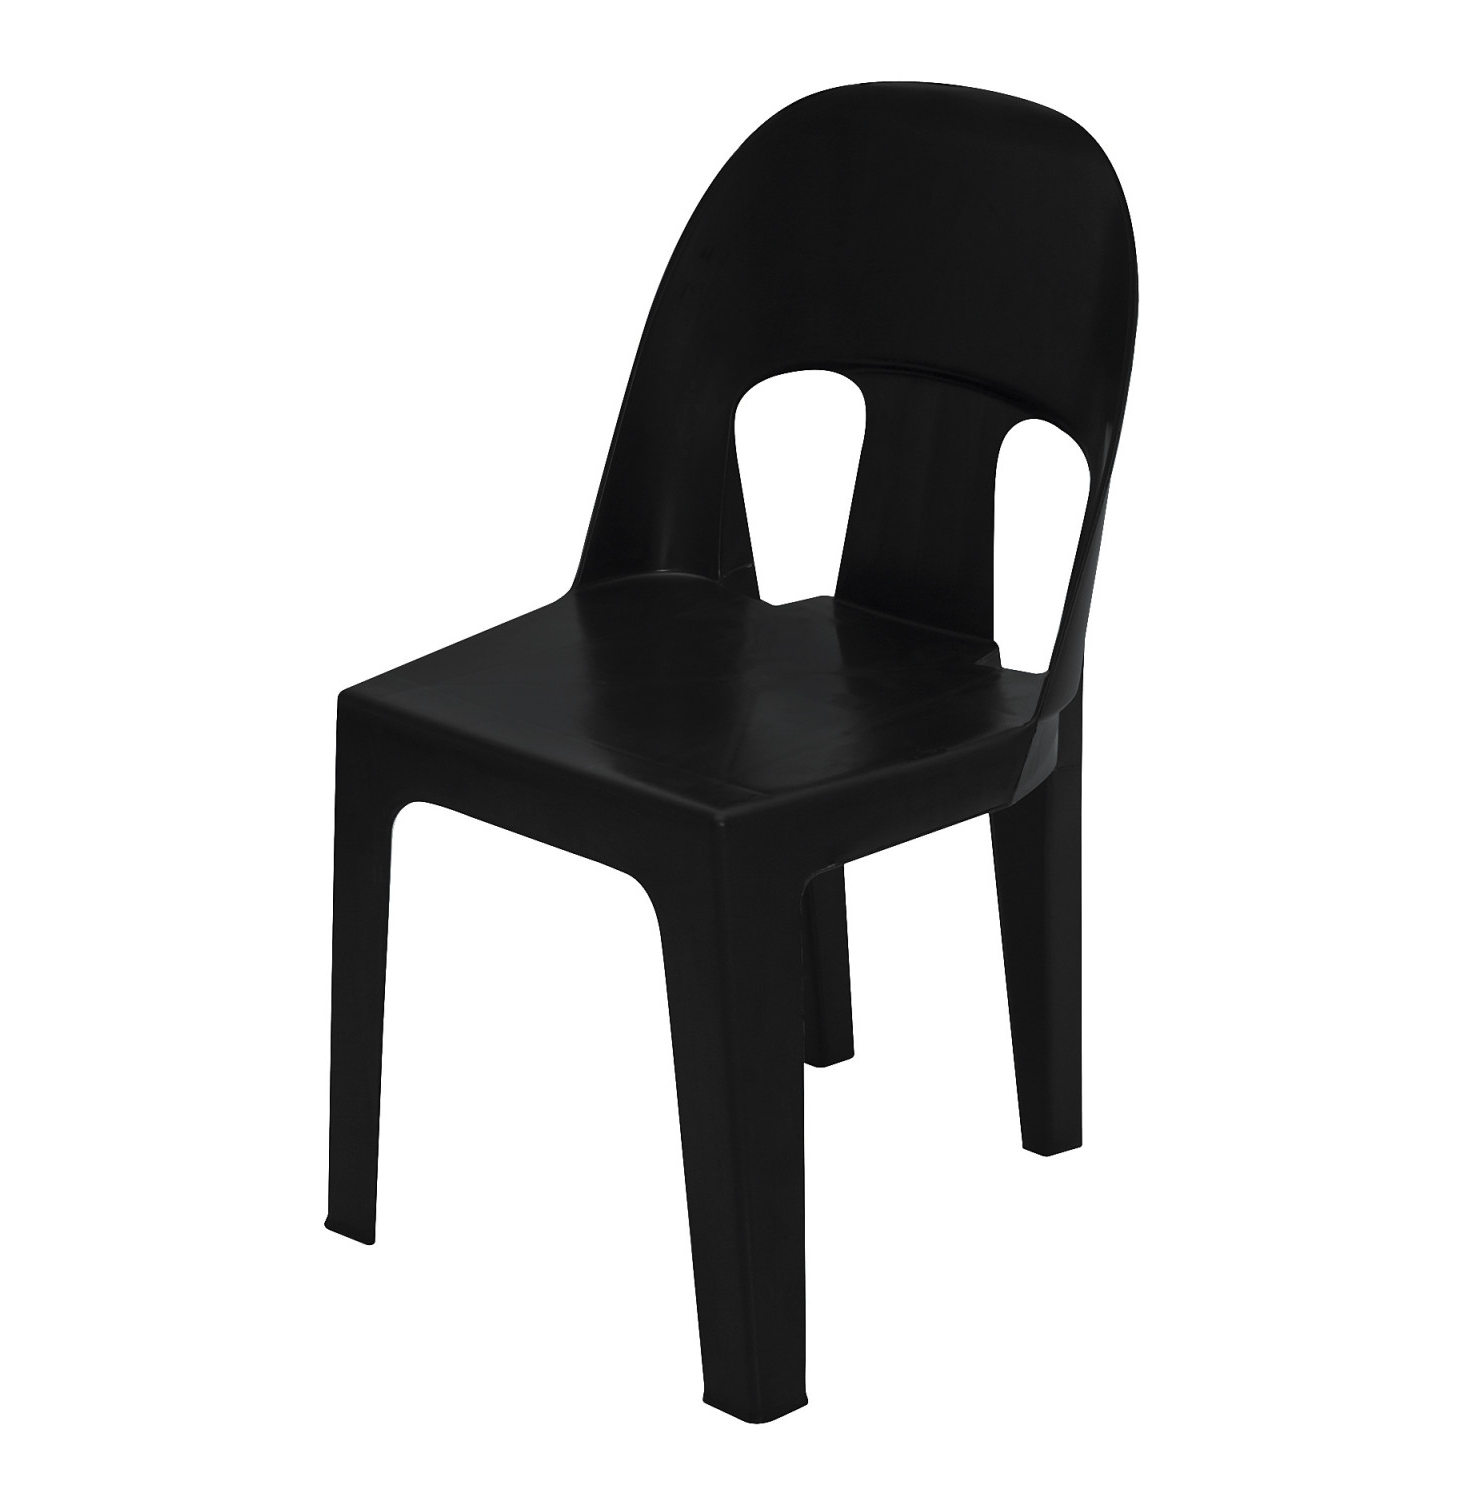 Plastic Chair S5d8 Plastic Chair Black Lowest Prices Specials Online Makro